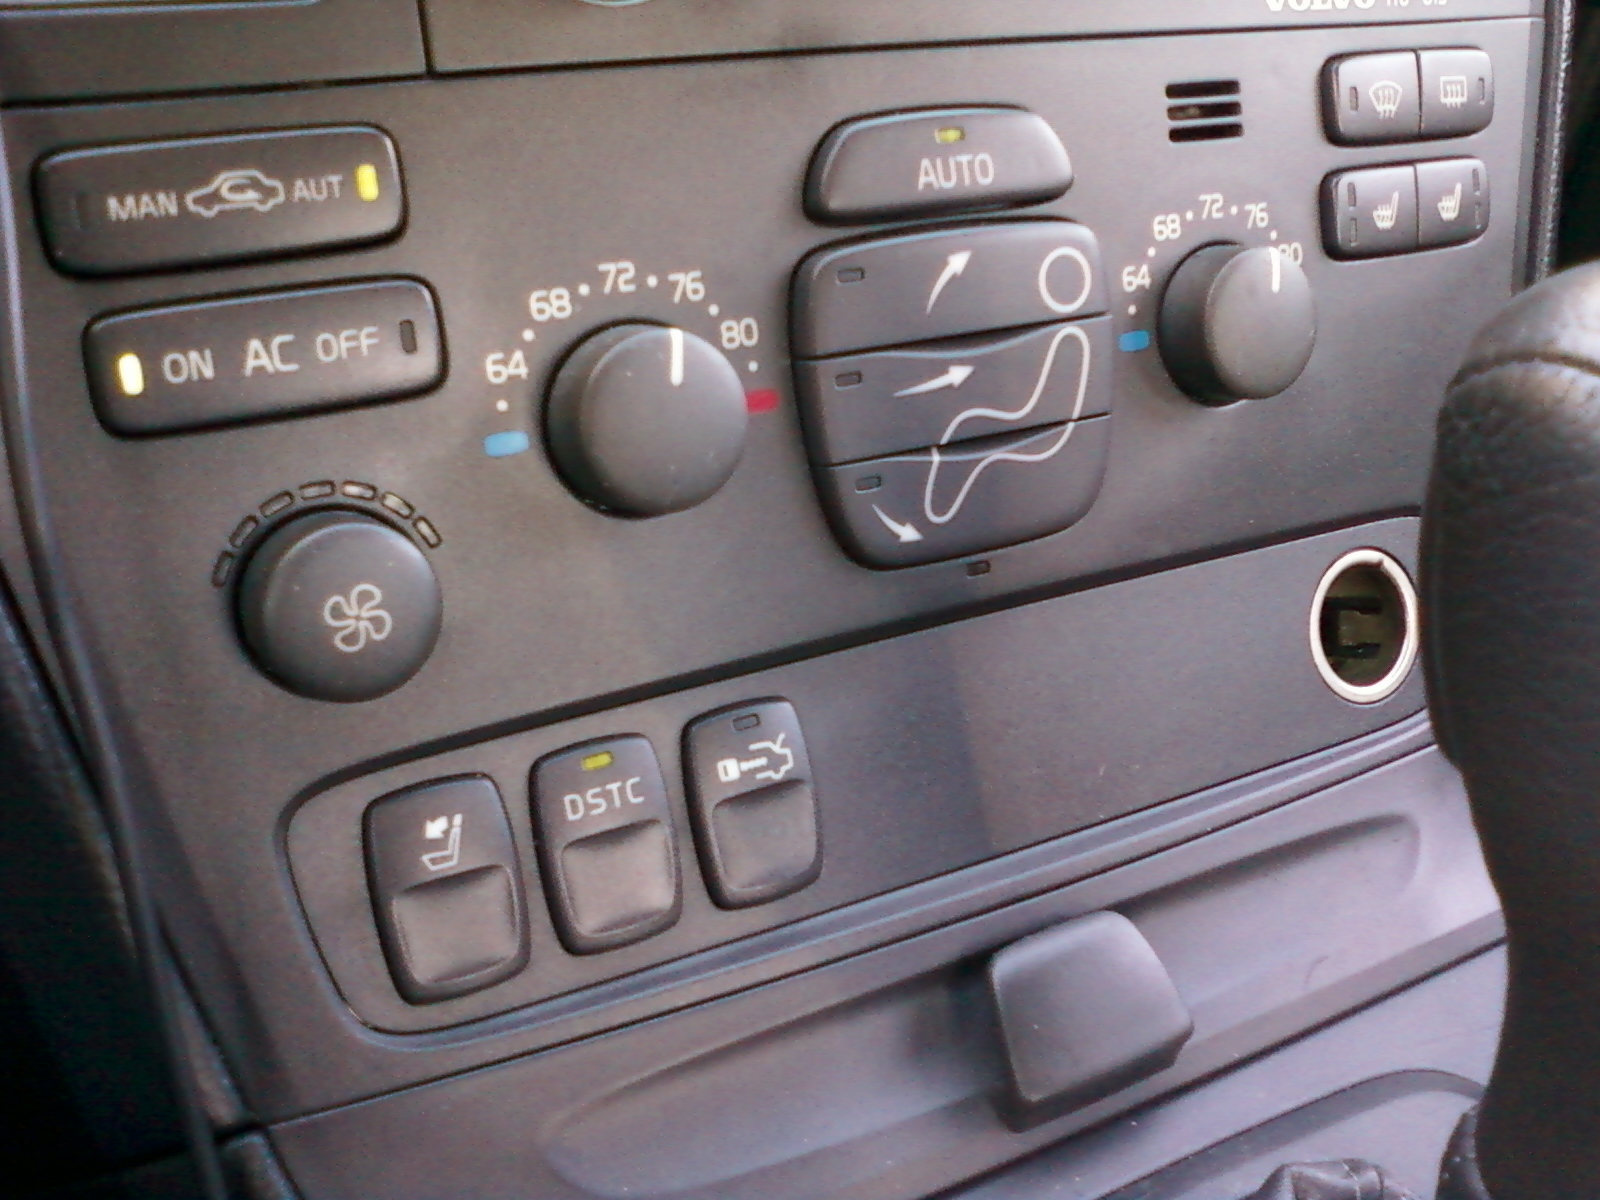 2002 S60 Trunk won't open with remote or switch - Volvo Forums